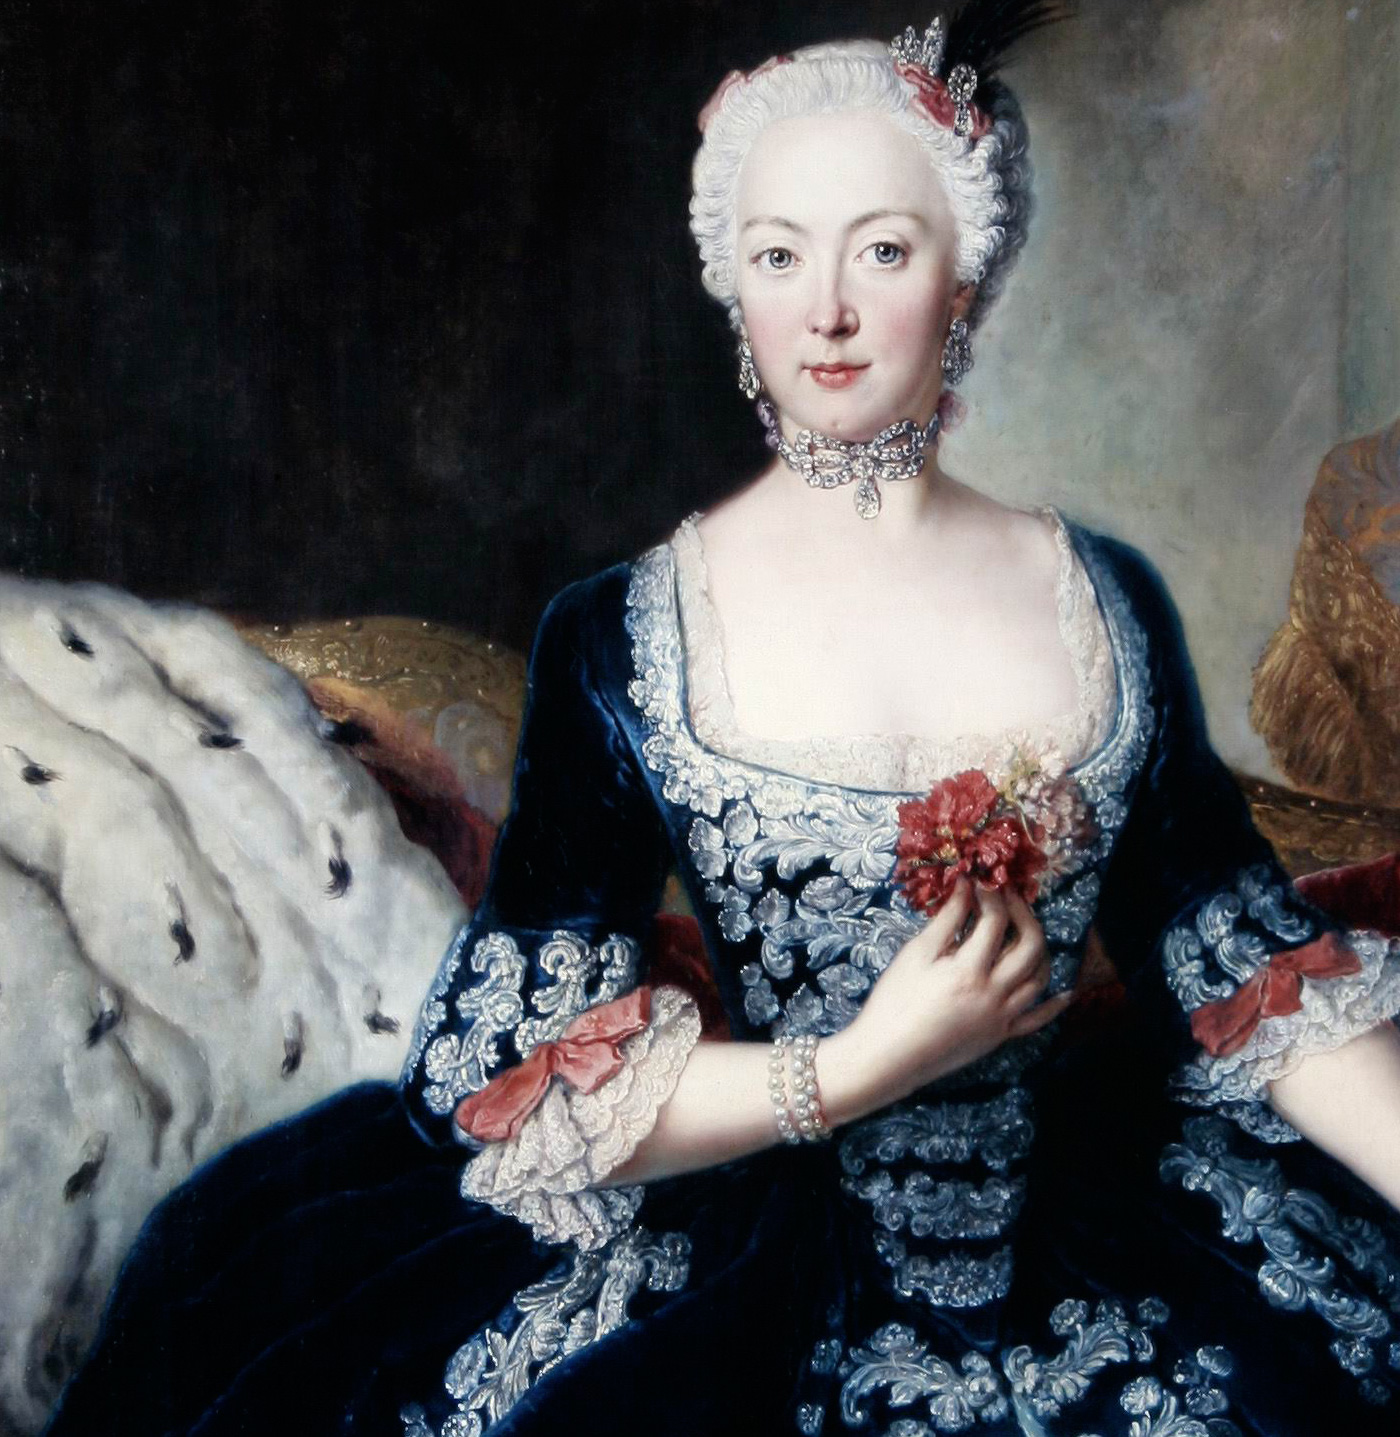 Reconstructions of 18th century court gowns.